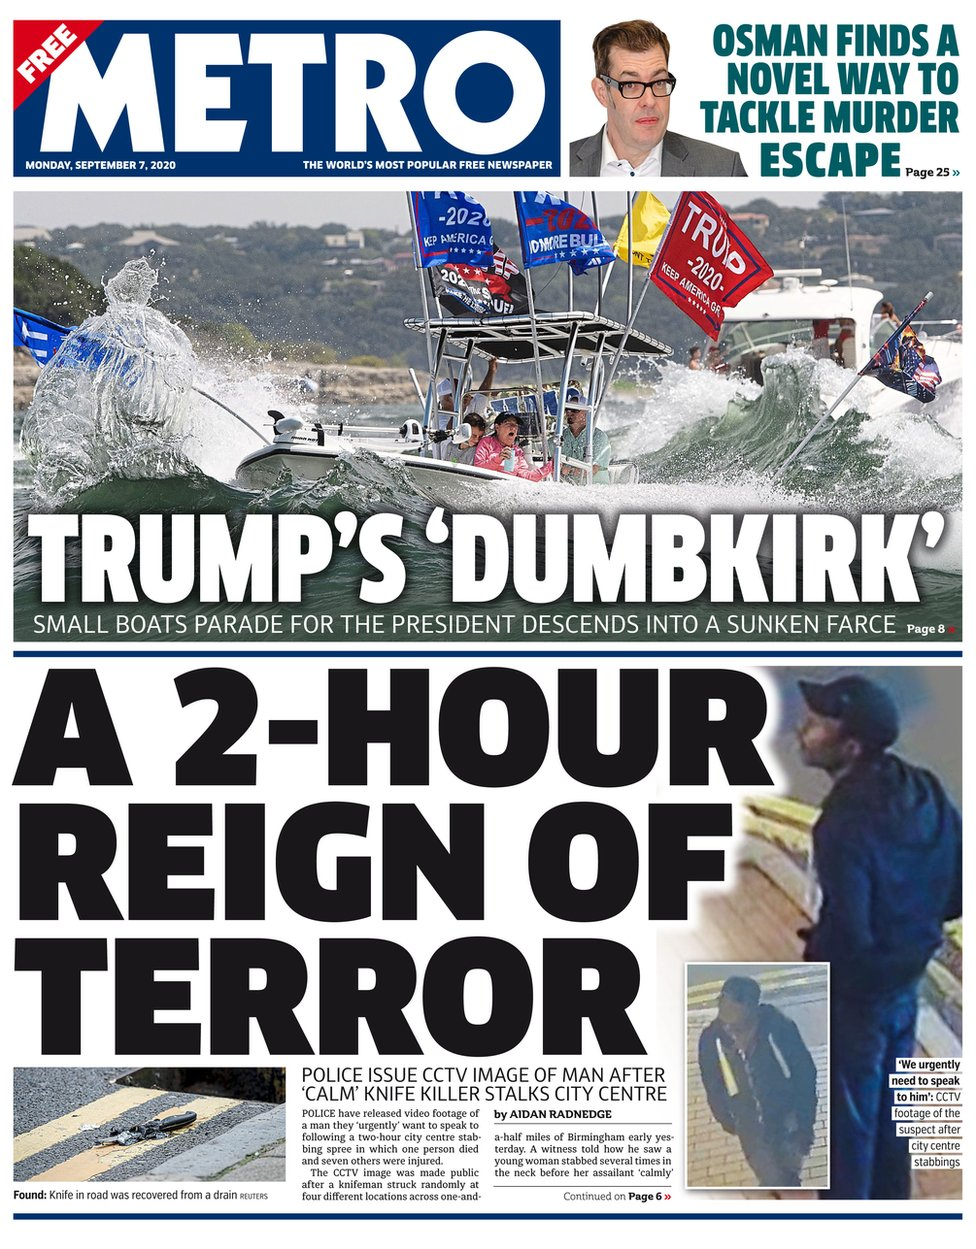 Metro front page, 7/9/20